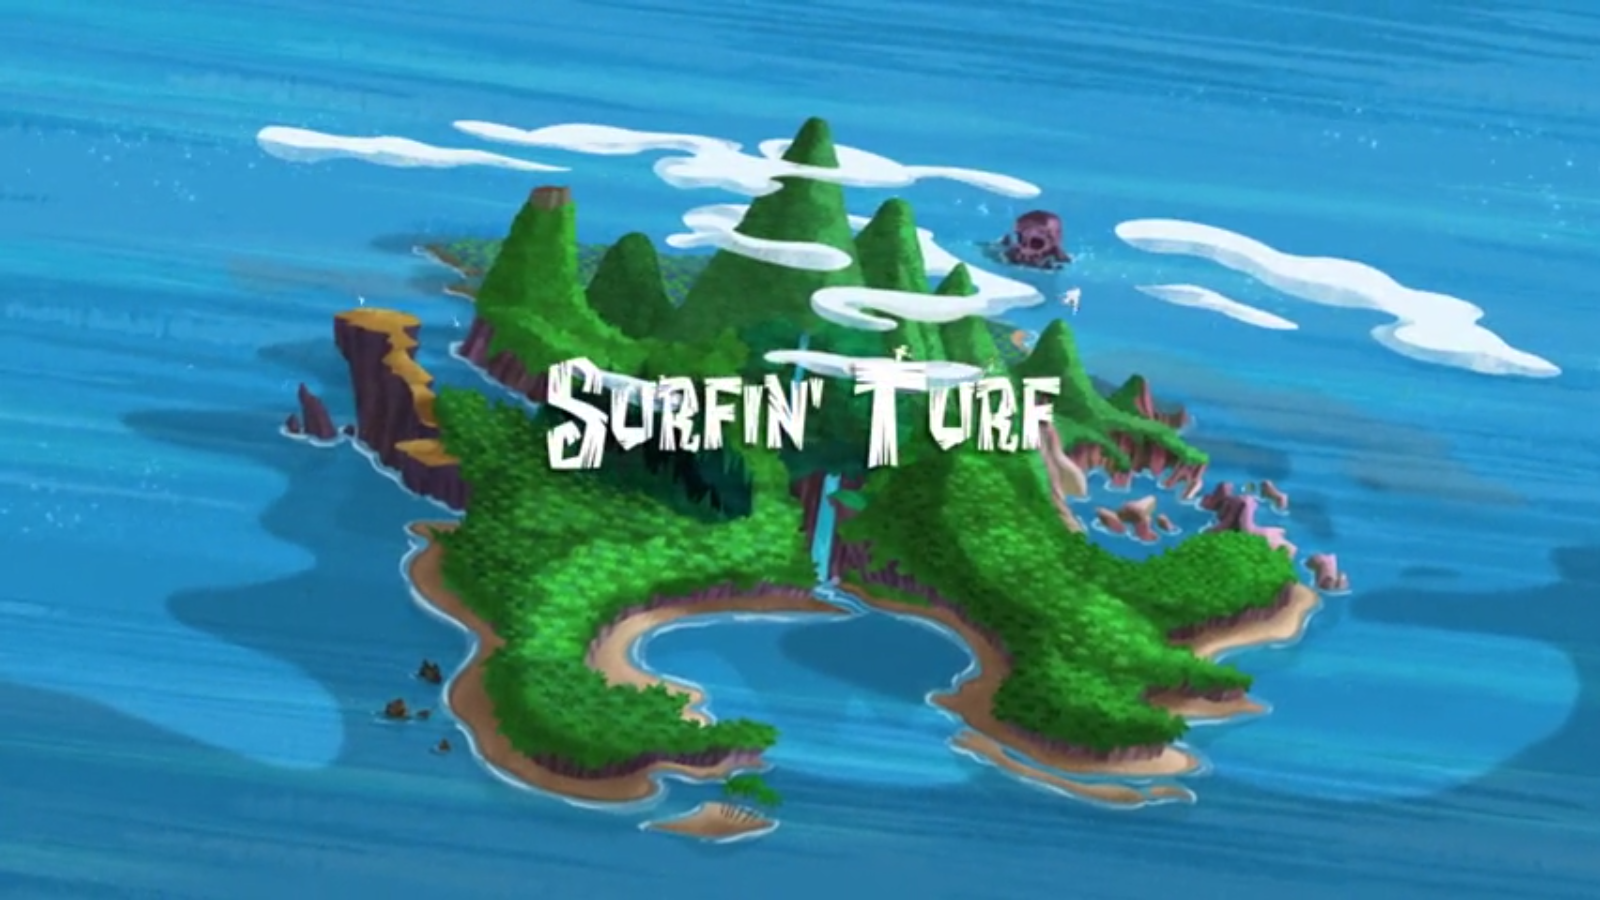 File:Surfin' Turf title card.png